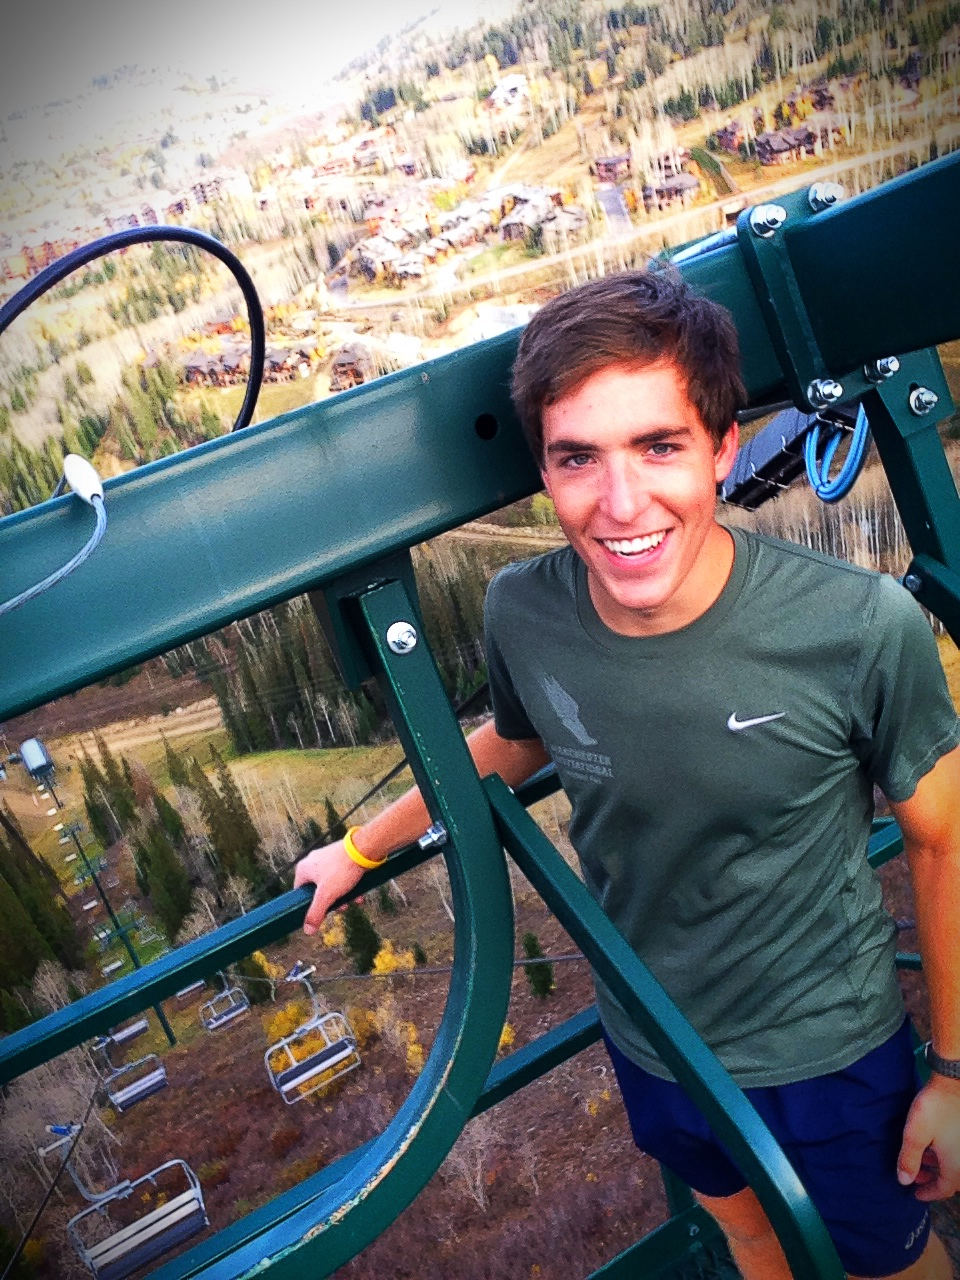 Paddy Caldwell, the newest member of the U.S. Ski Team. Great addition to the crew!